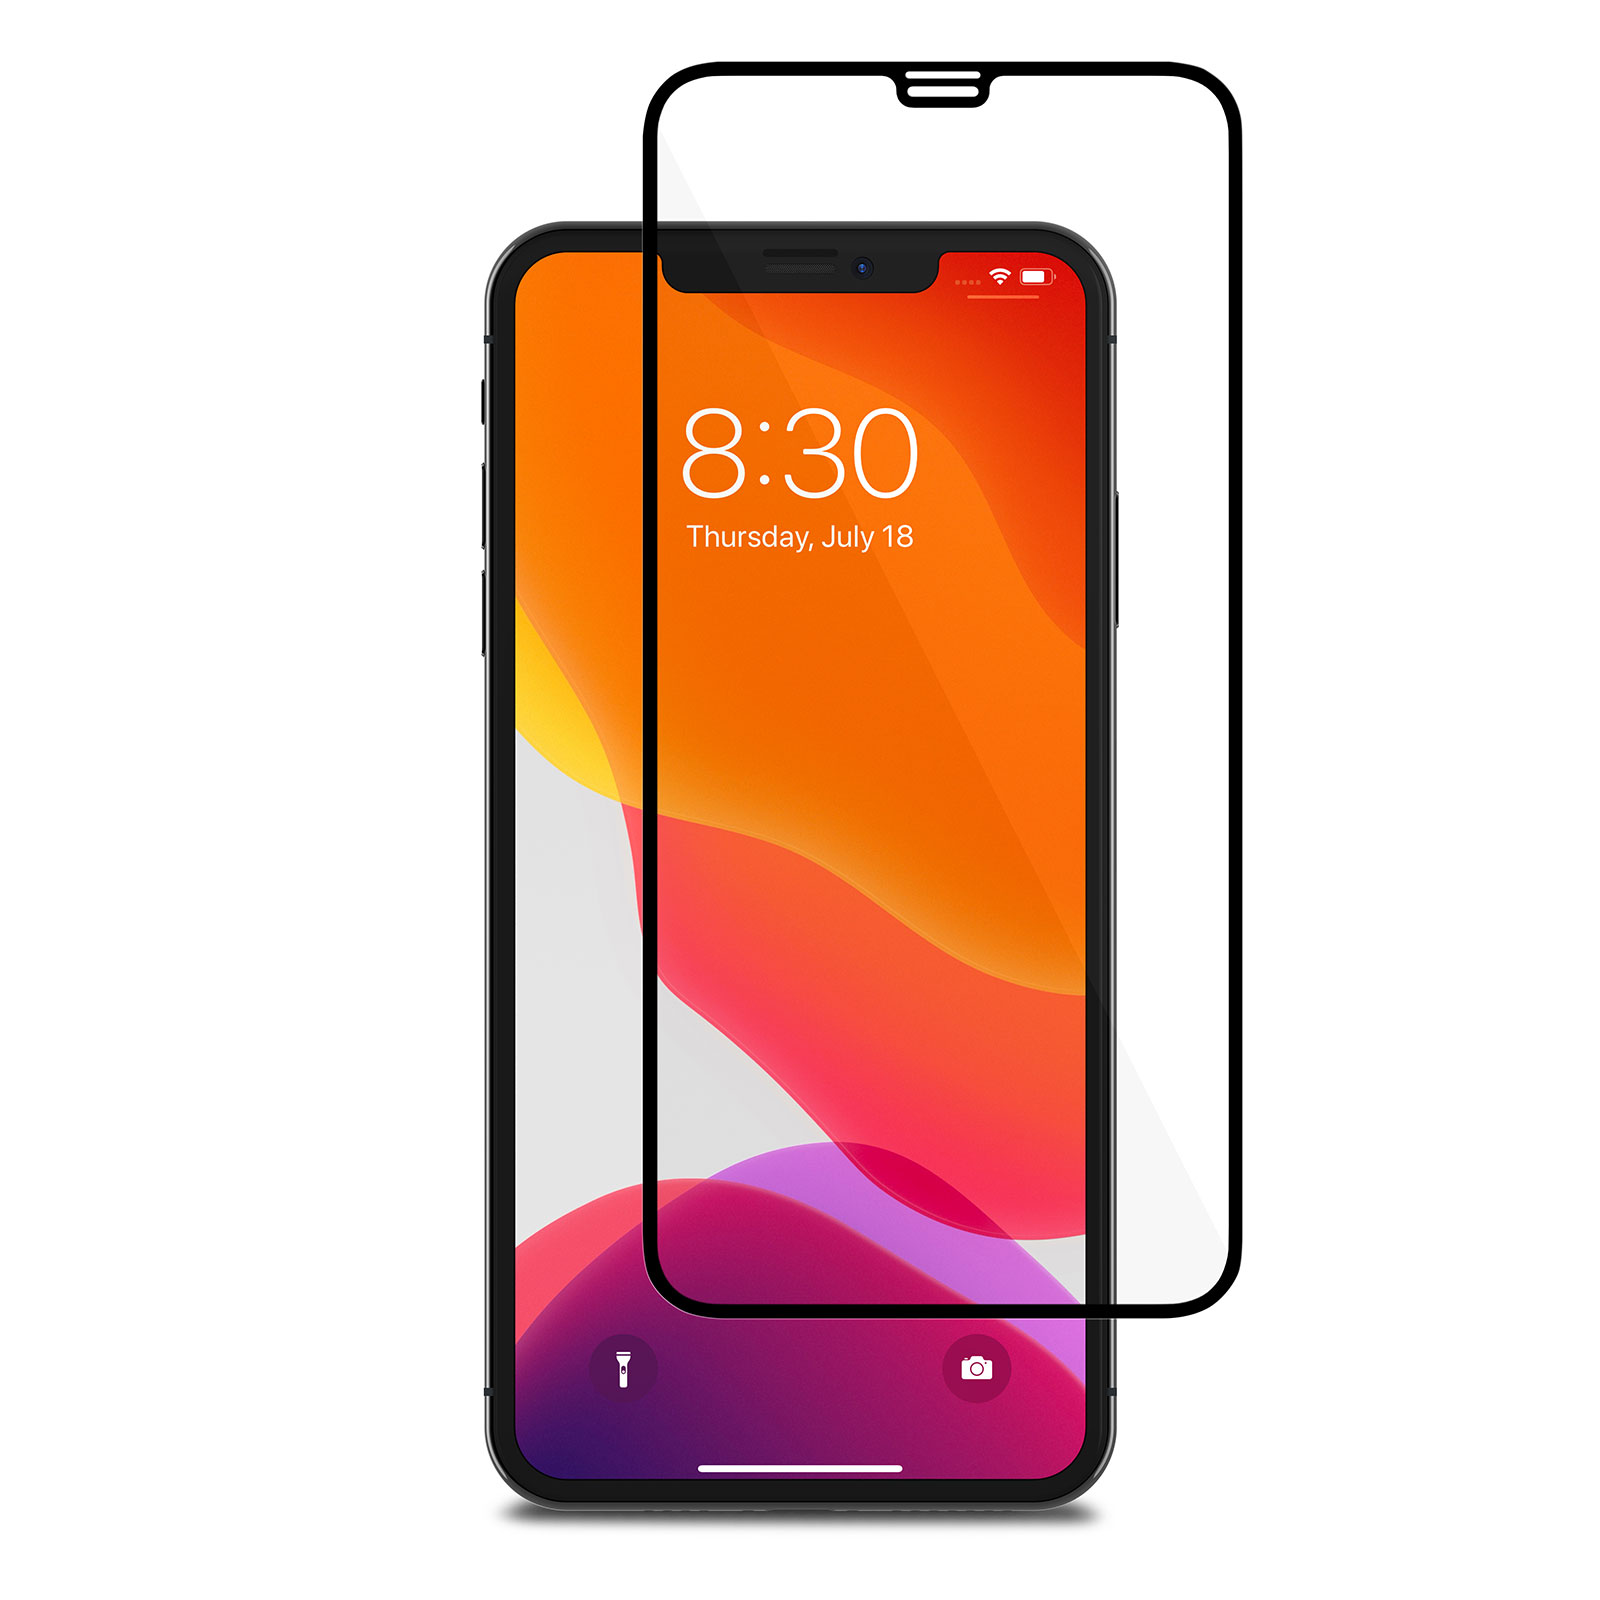 huge discount be6e7 1948f IonGlass for iPhone XS Max